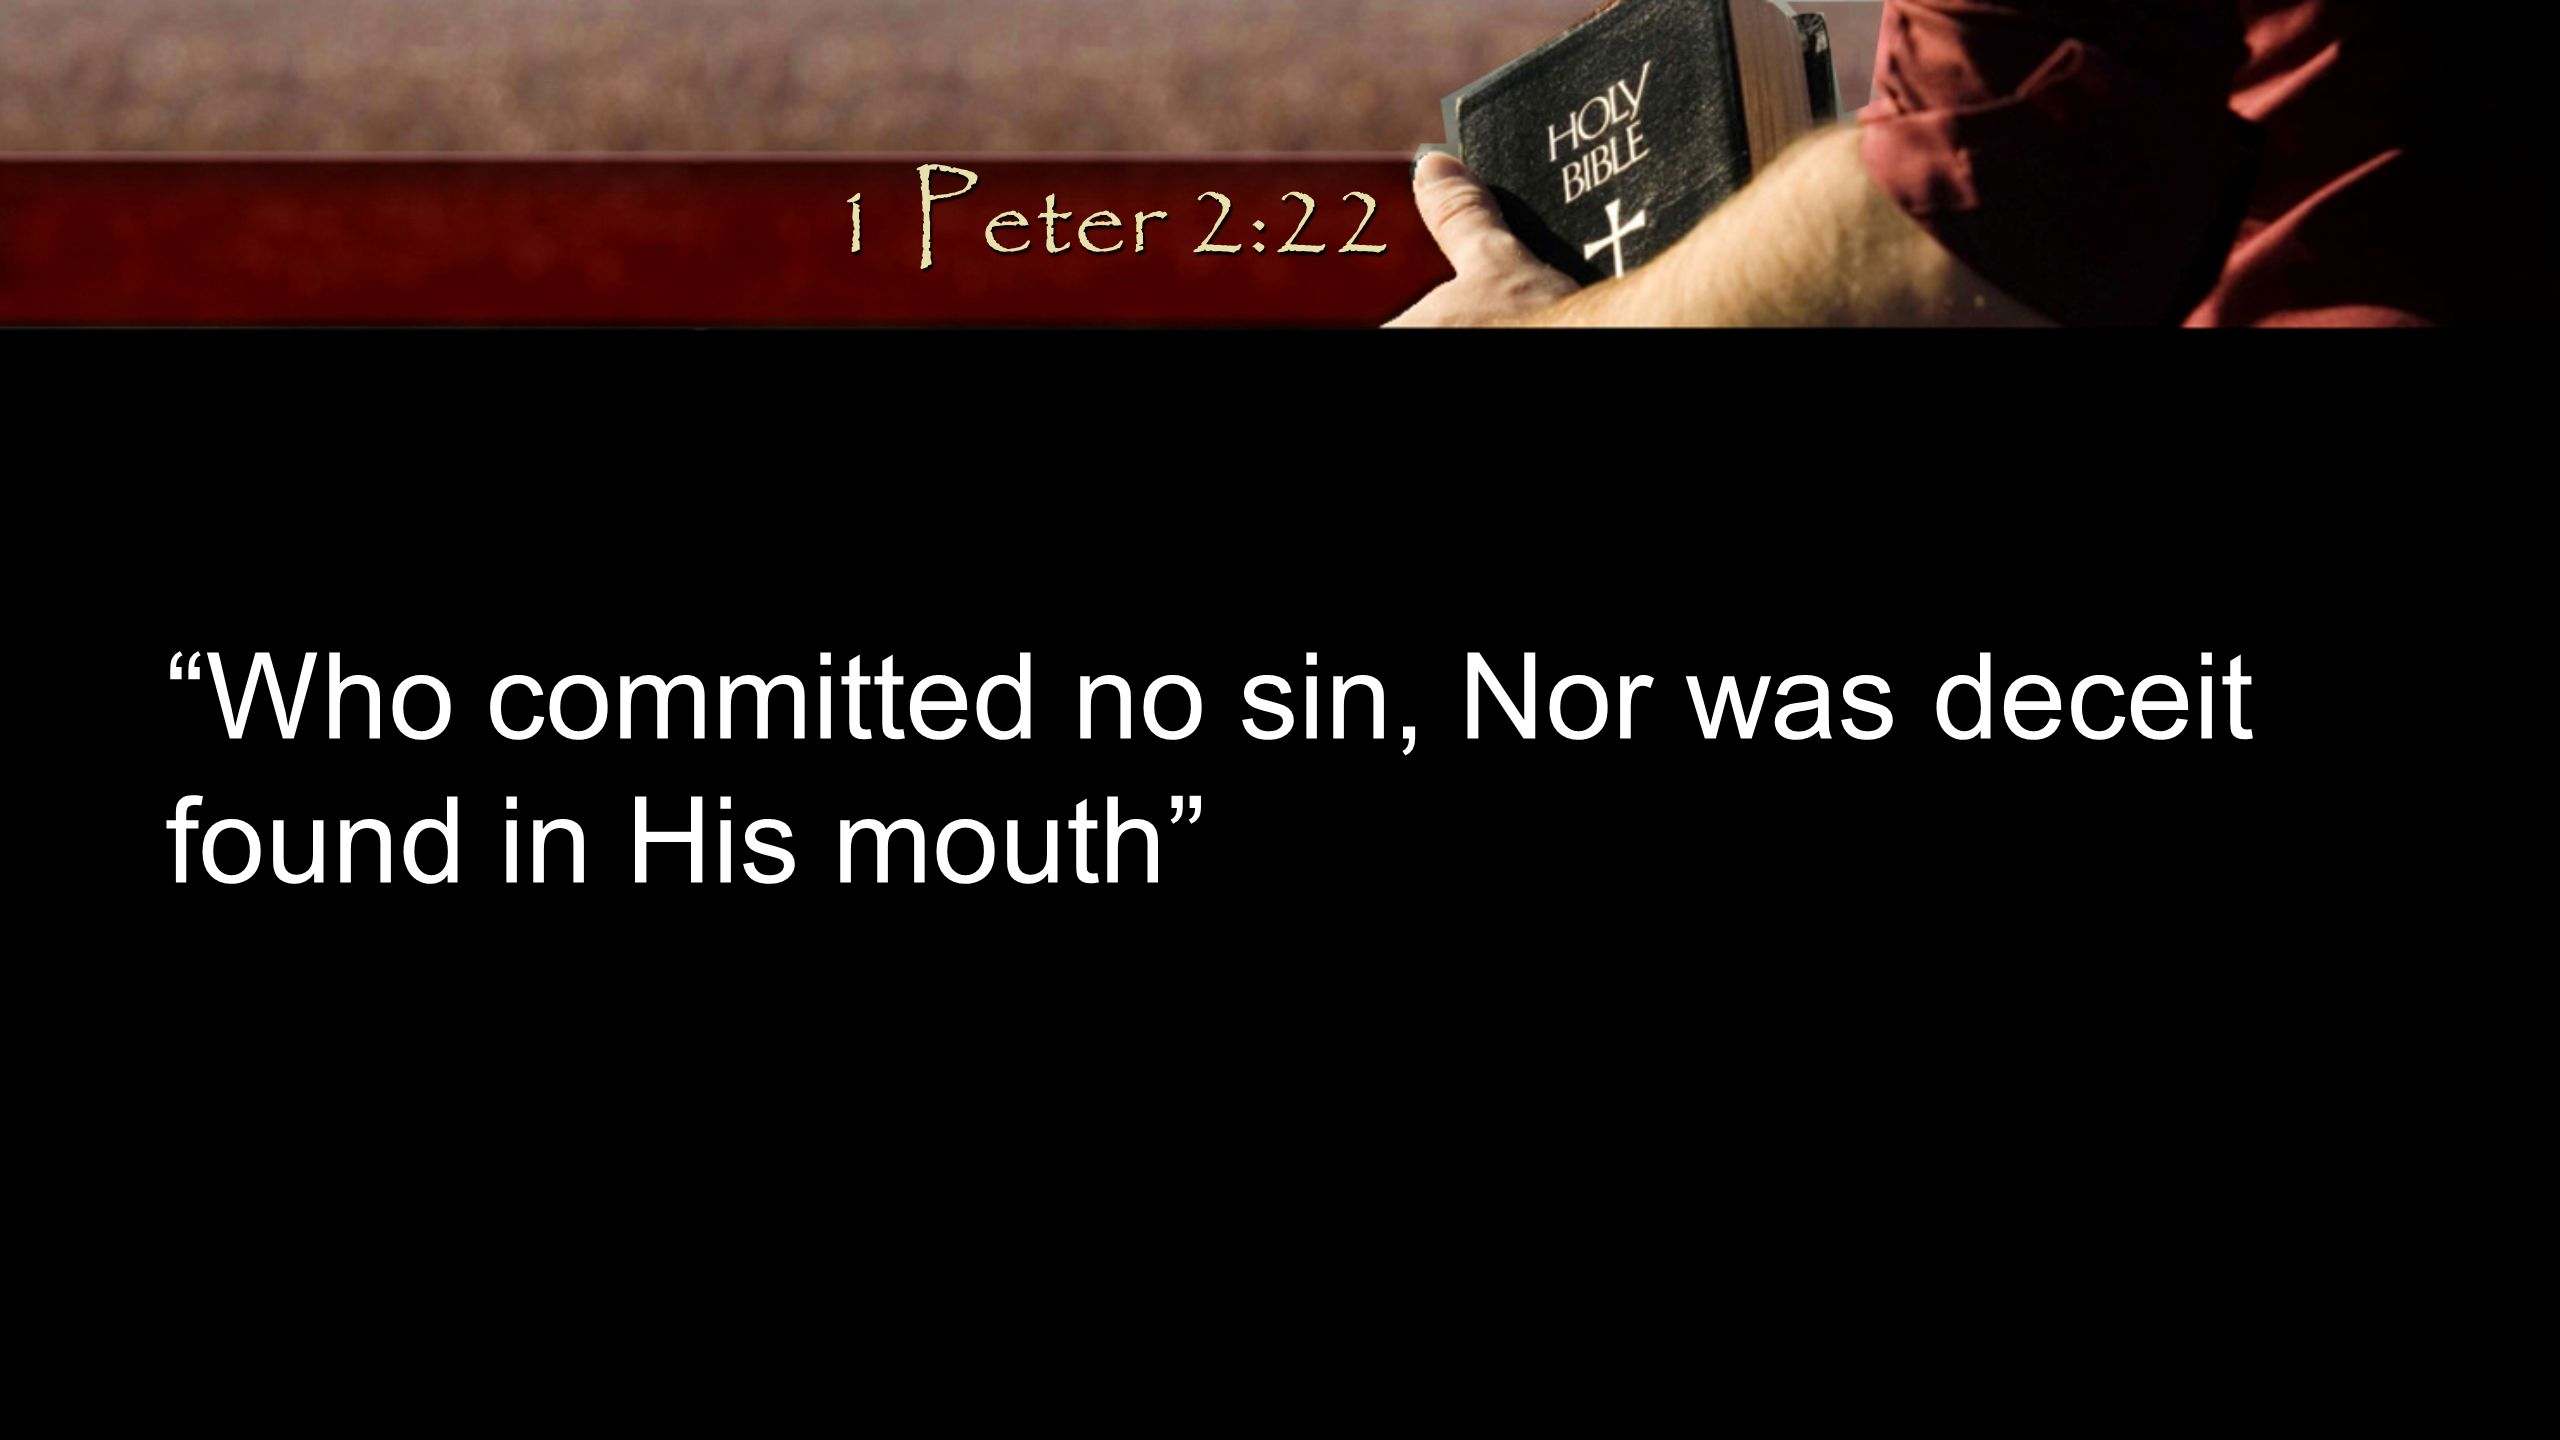 Who committed no sin, Nor was deceit found in His mouth